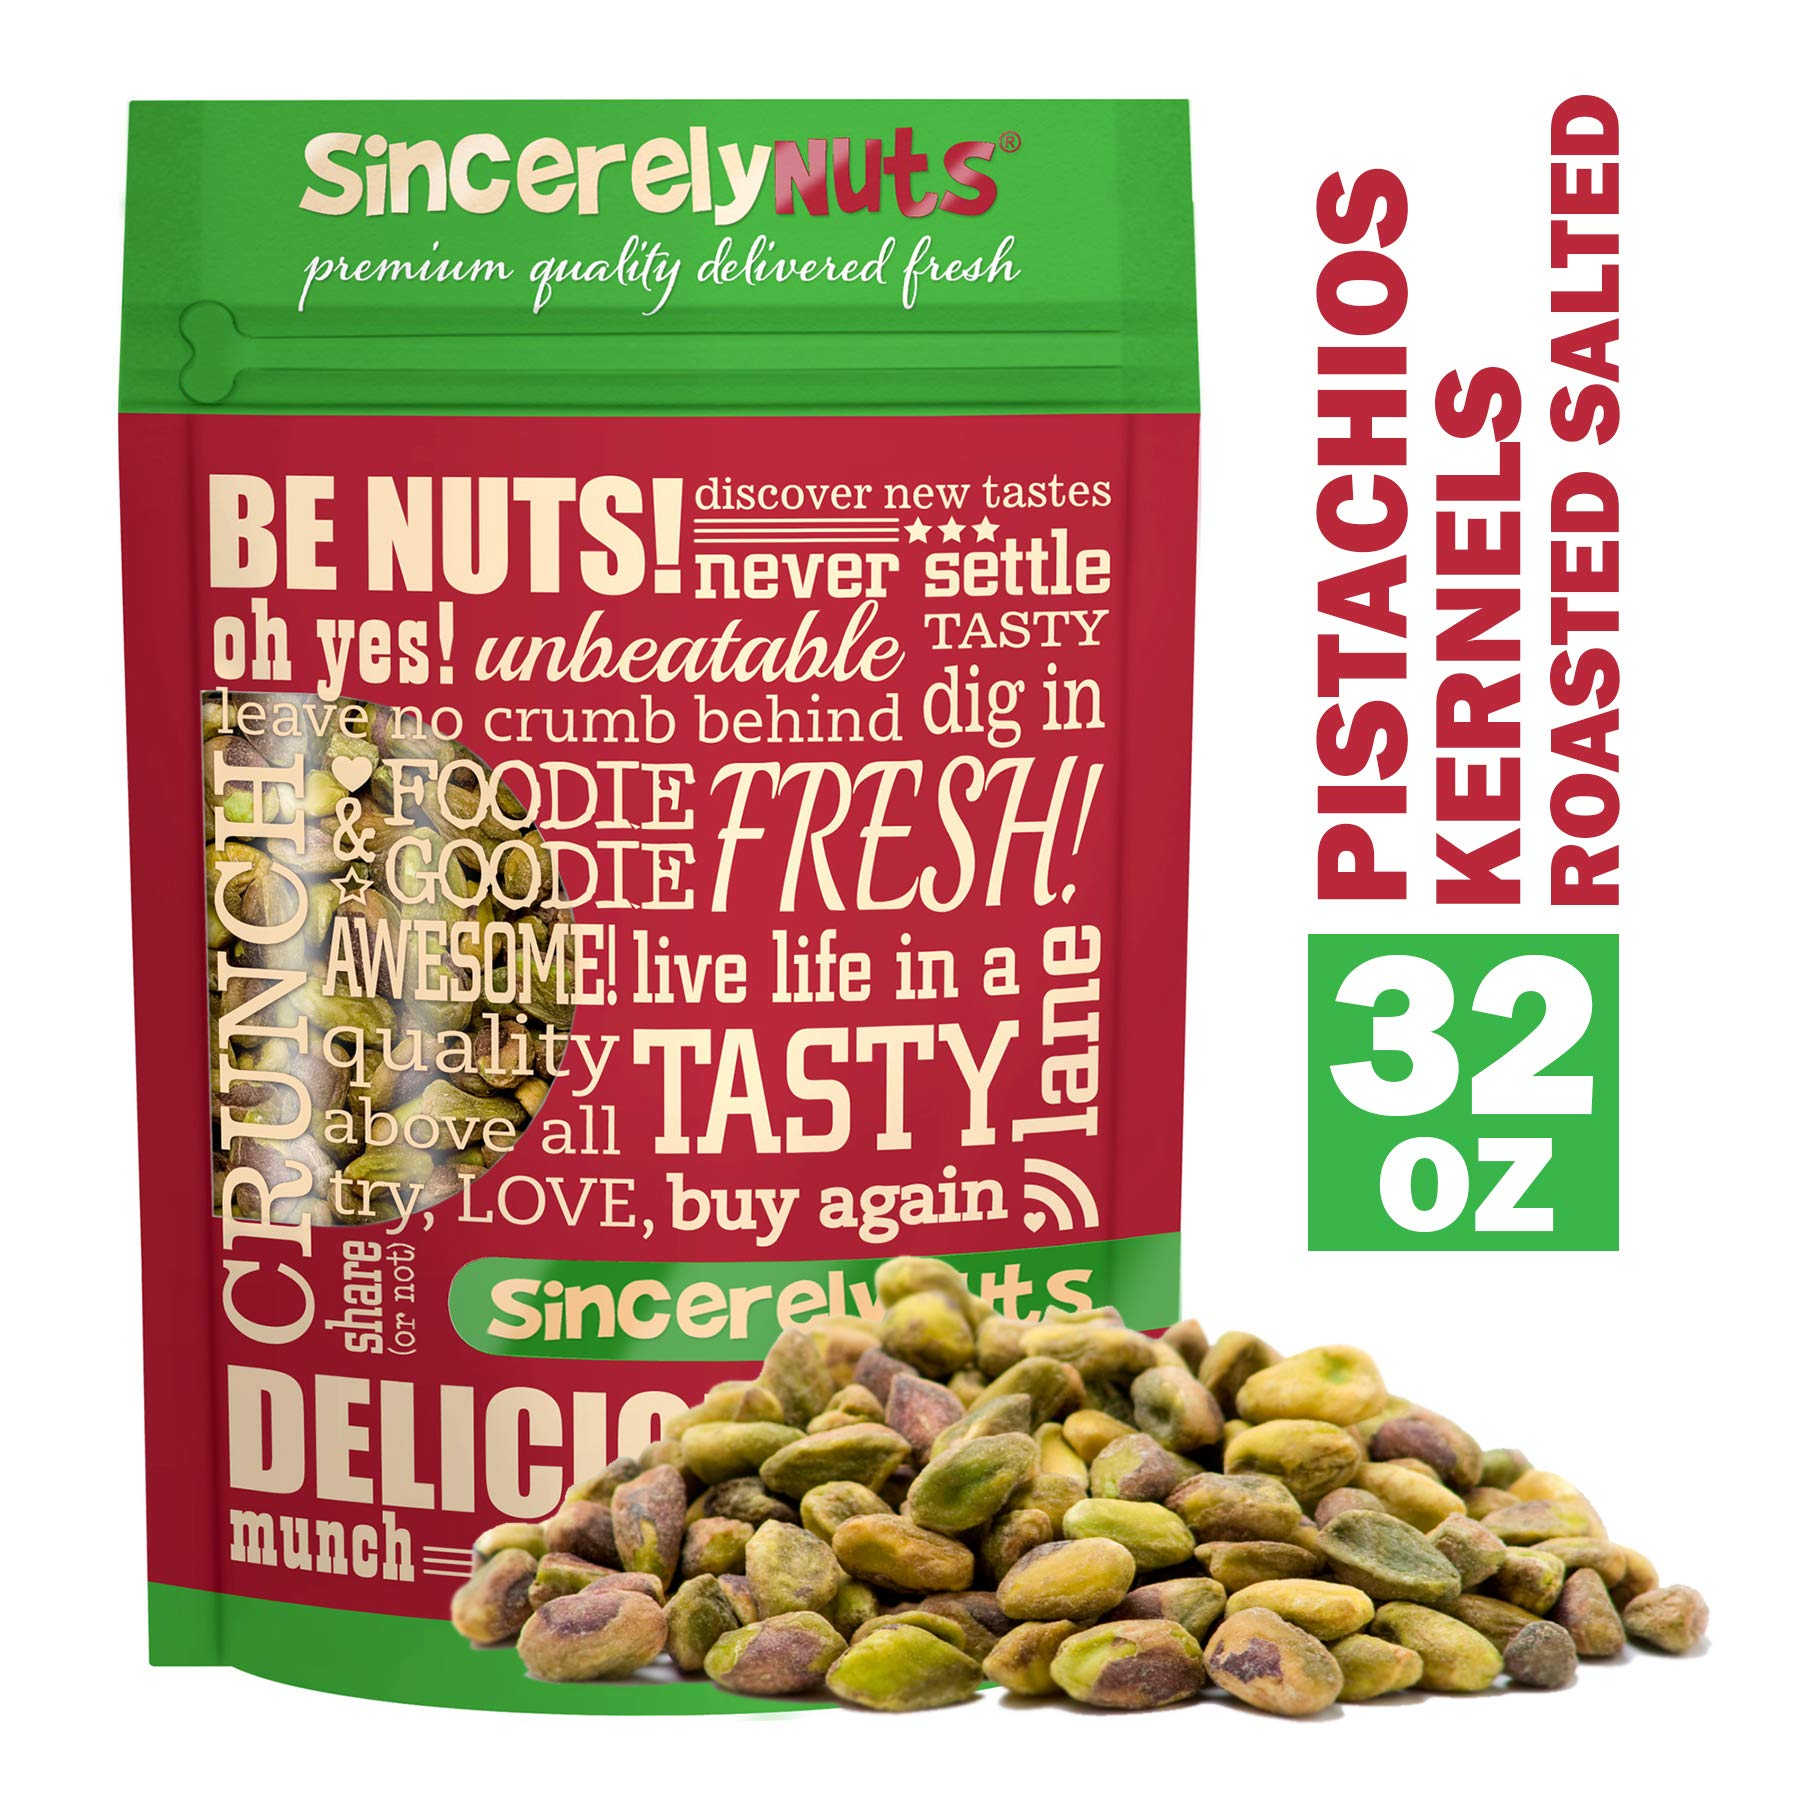 Sincerely Nuts Pistachios Roasted and Salted Kernels (Meats) No Shell - 2 Lb. Bag -   Healthy Snack Food   Great for Cooking   Source of Fiber & Protein   Gourmet Flavor   Vegan, Kosher & Gluten Free